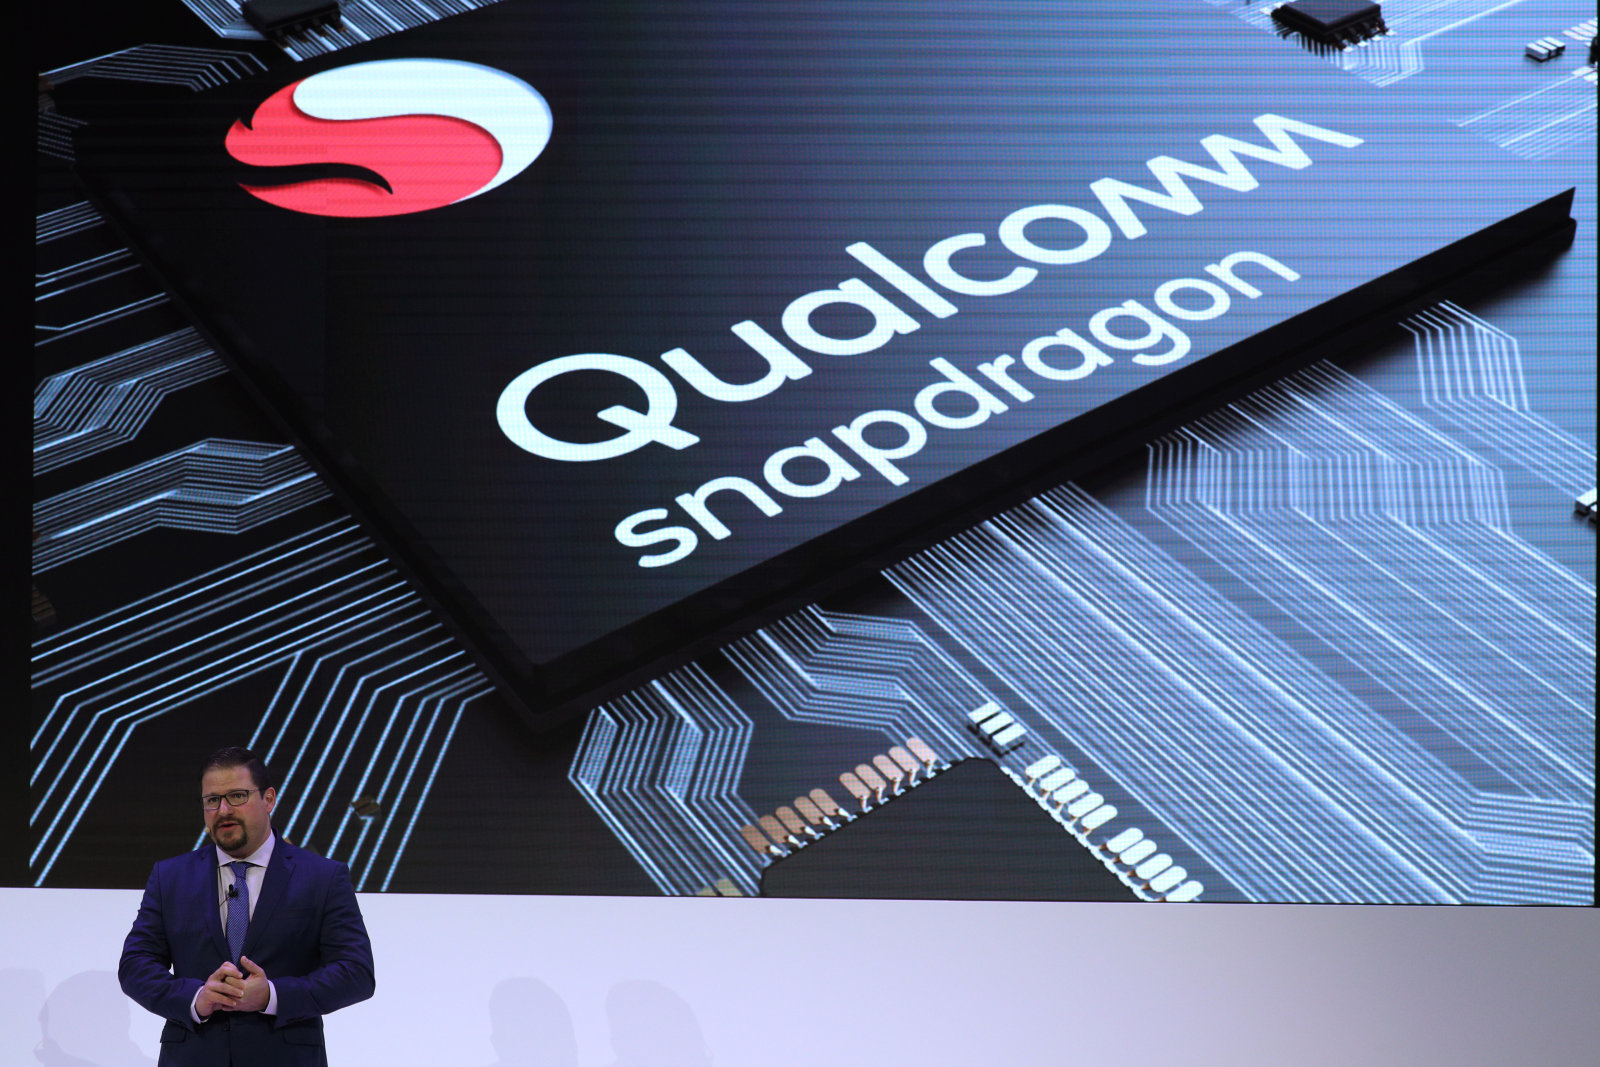 Cristiano Amon, President of Qualcomm Incorporated, delivers a presentation during the Mobile World Congress in Barcelona